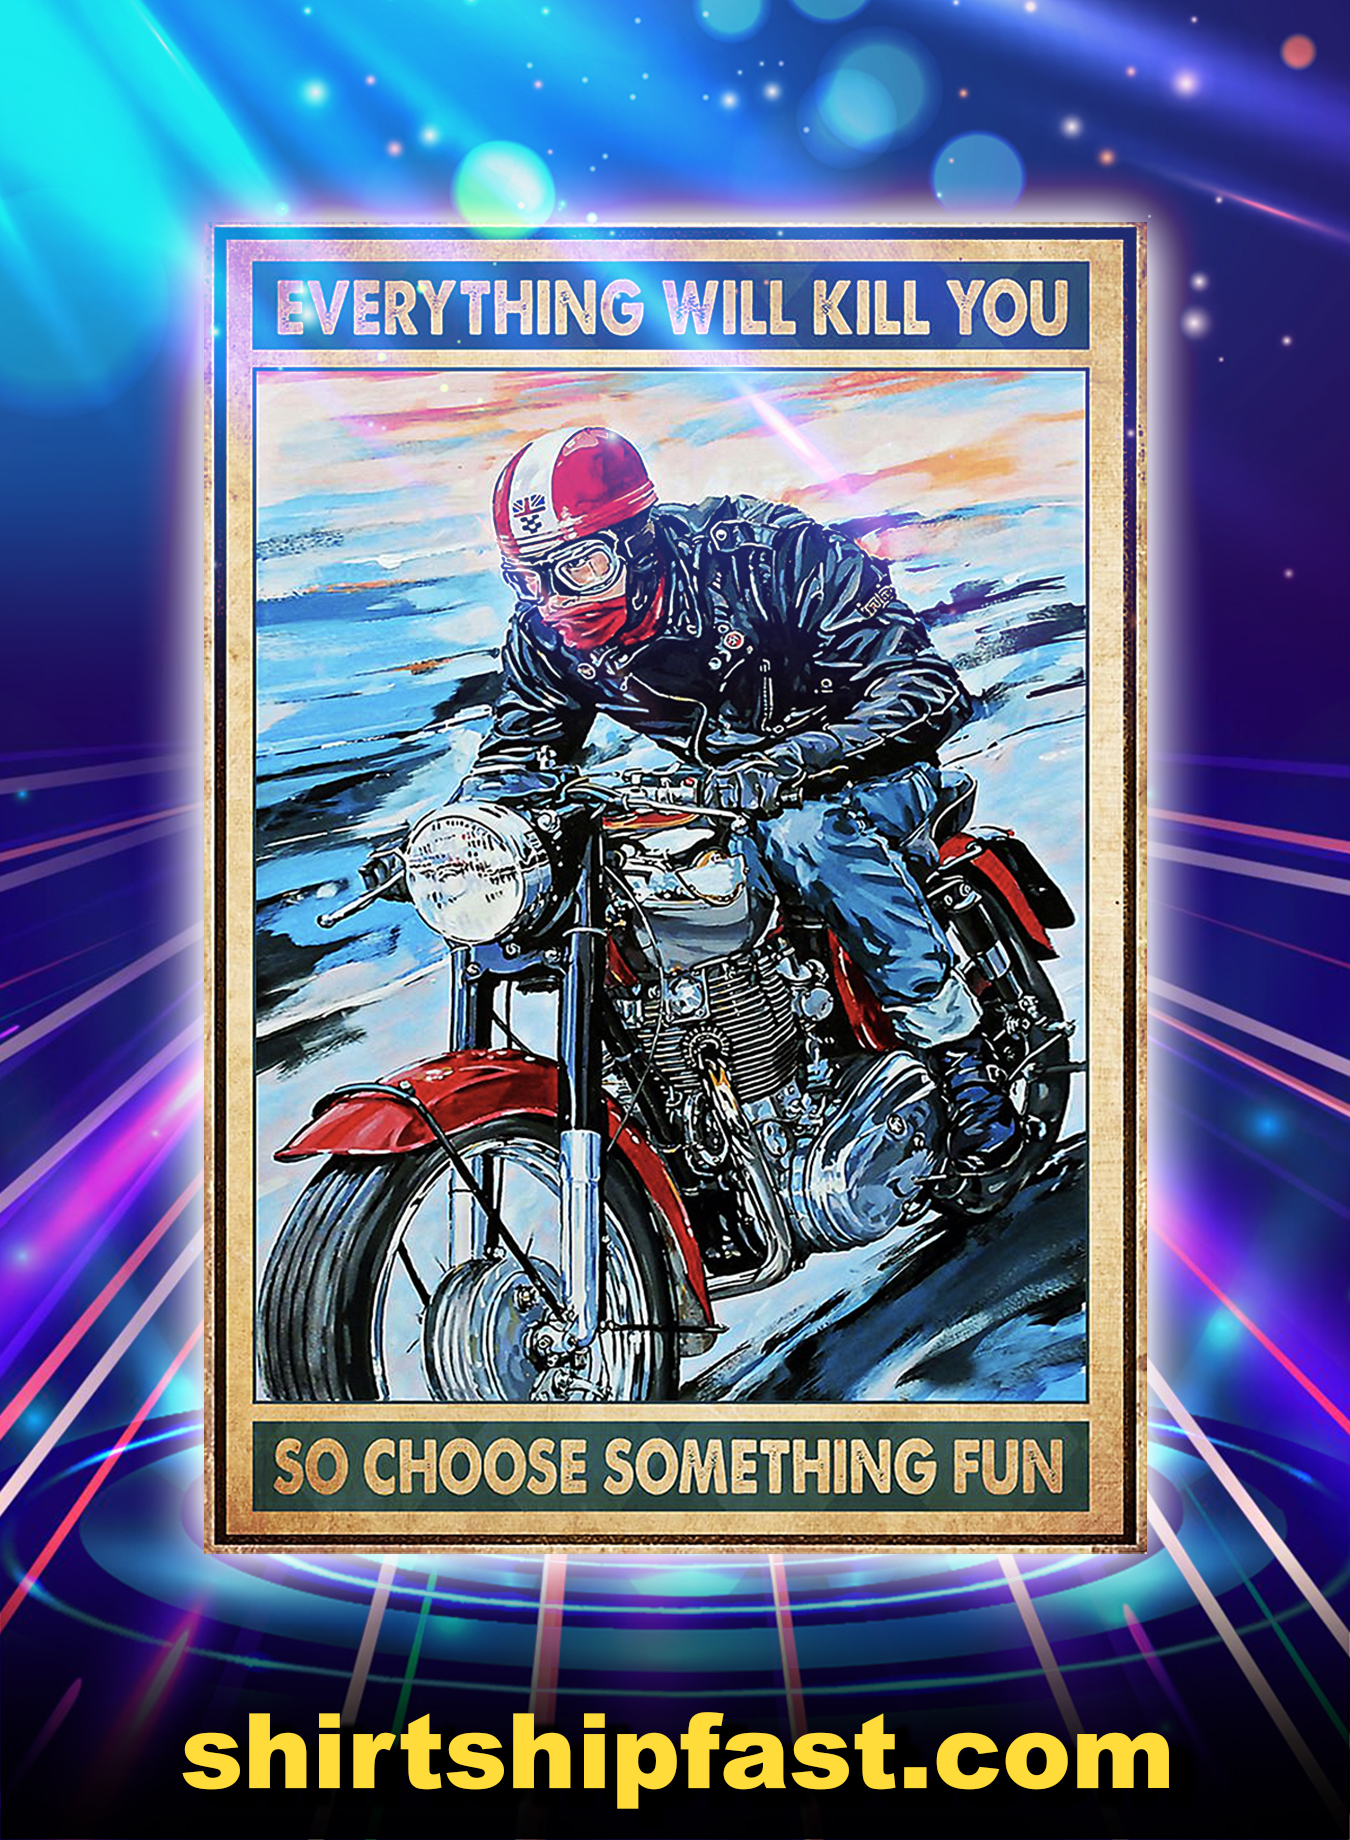 Cafe racer everything will kill you so choose something fun poster - A3